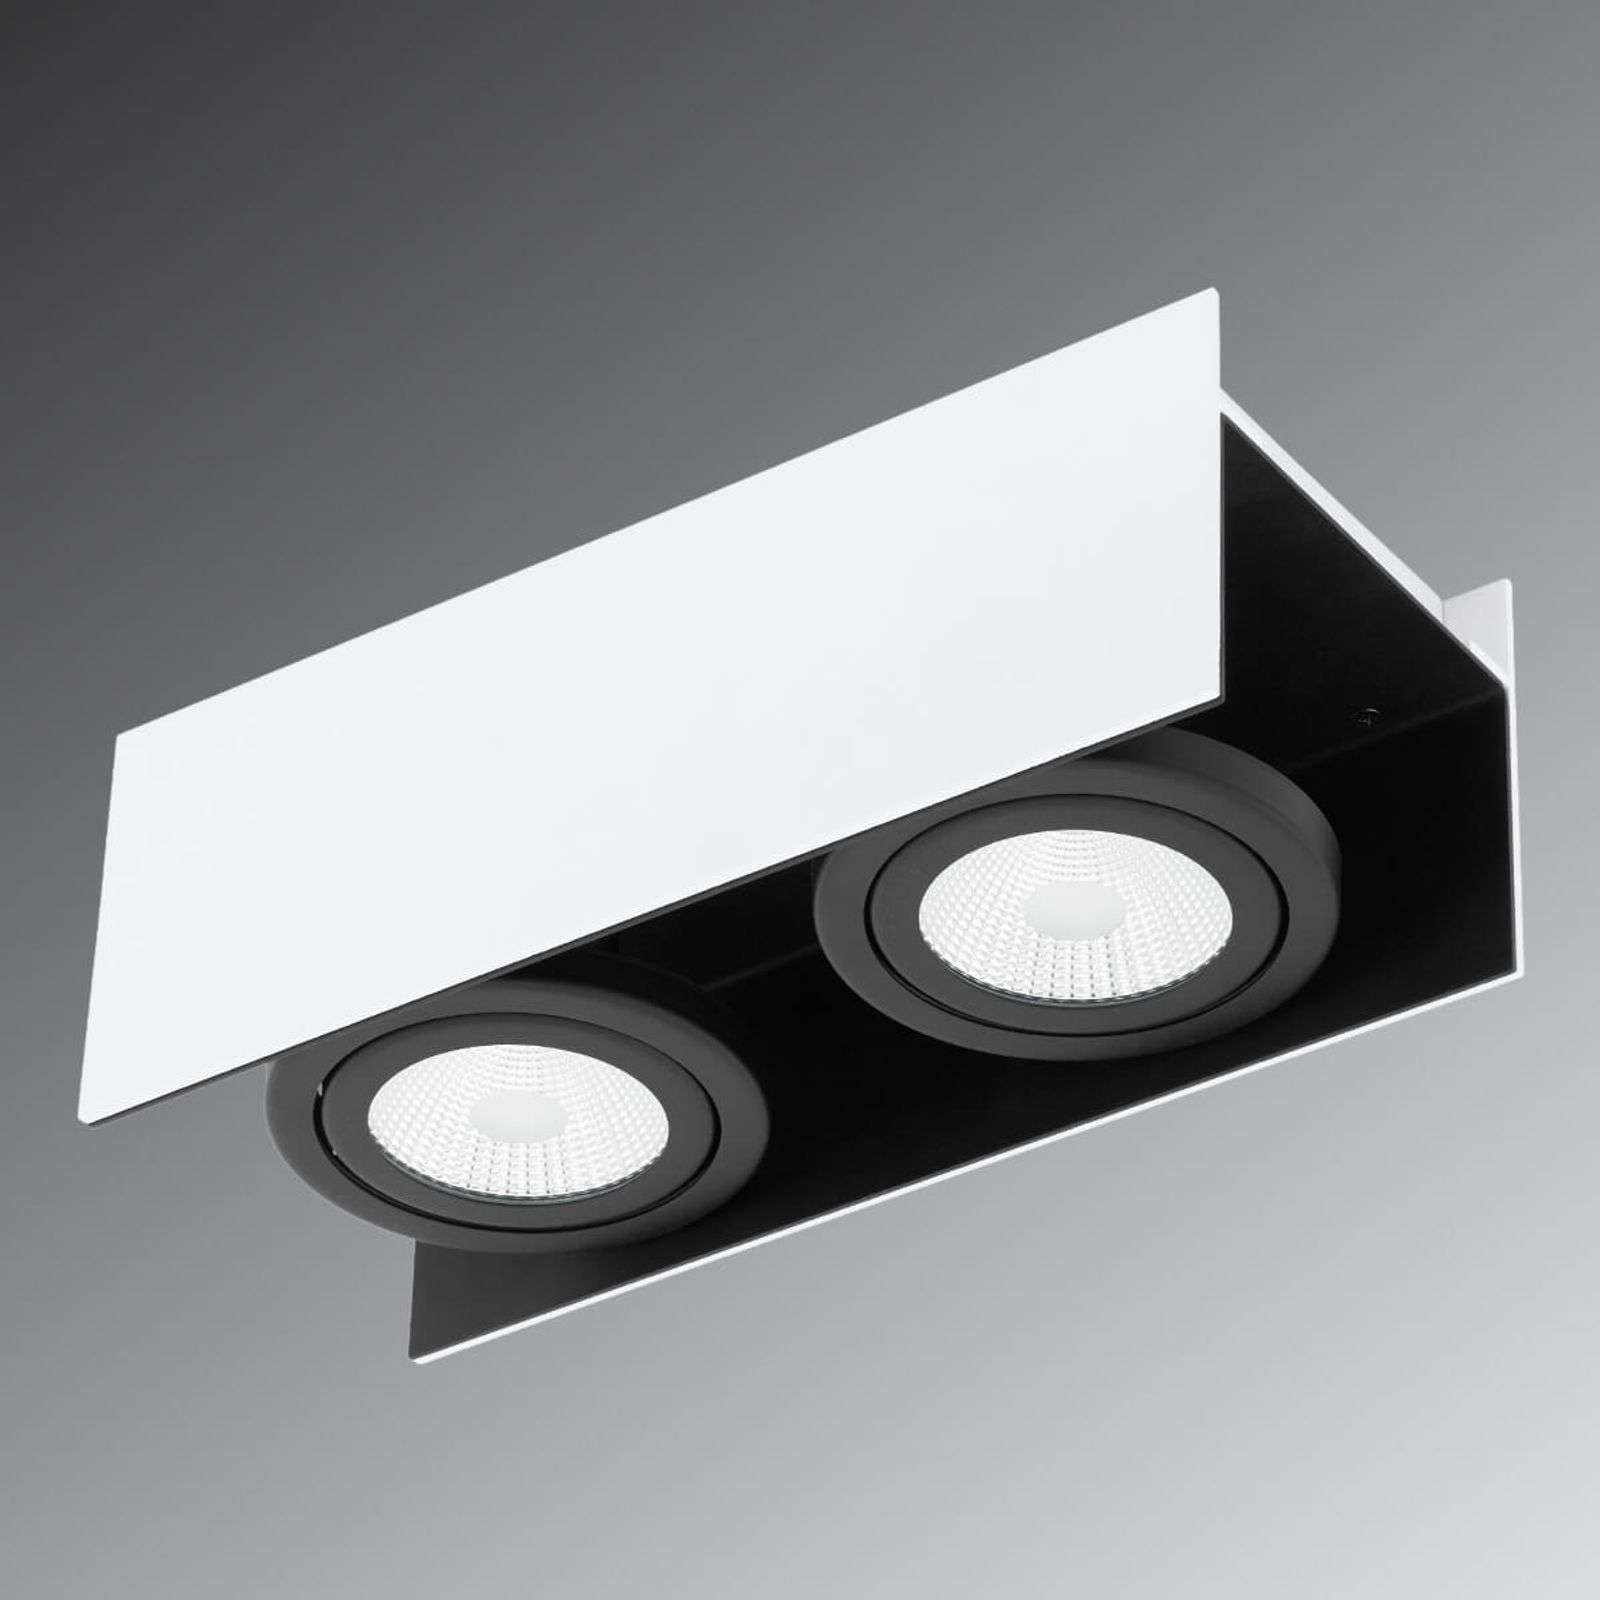 Faretto LED da soffitto Vidago a 2 lampadine